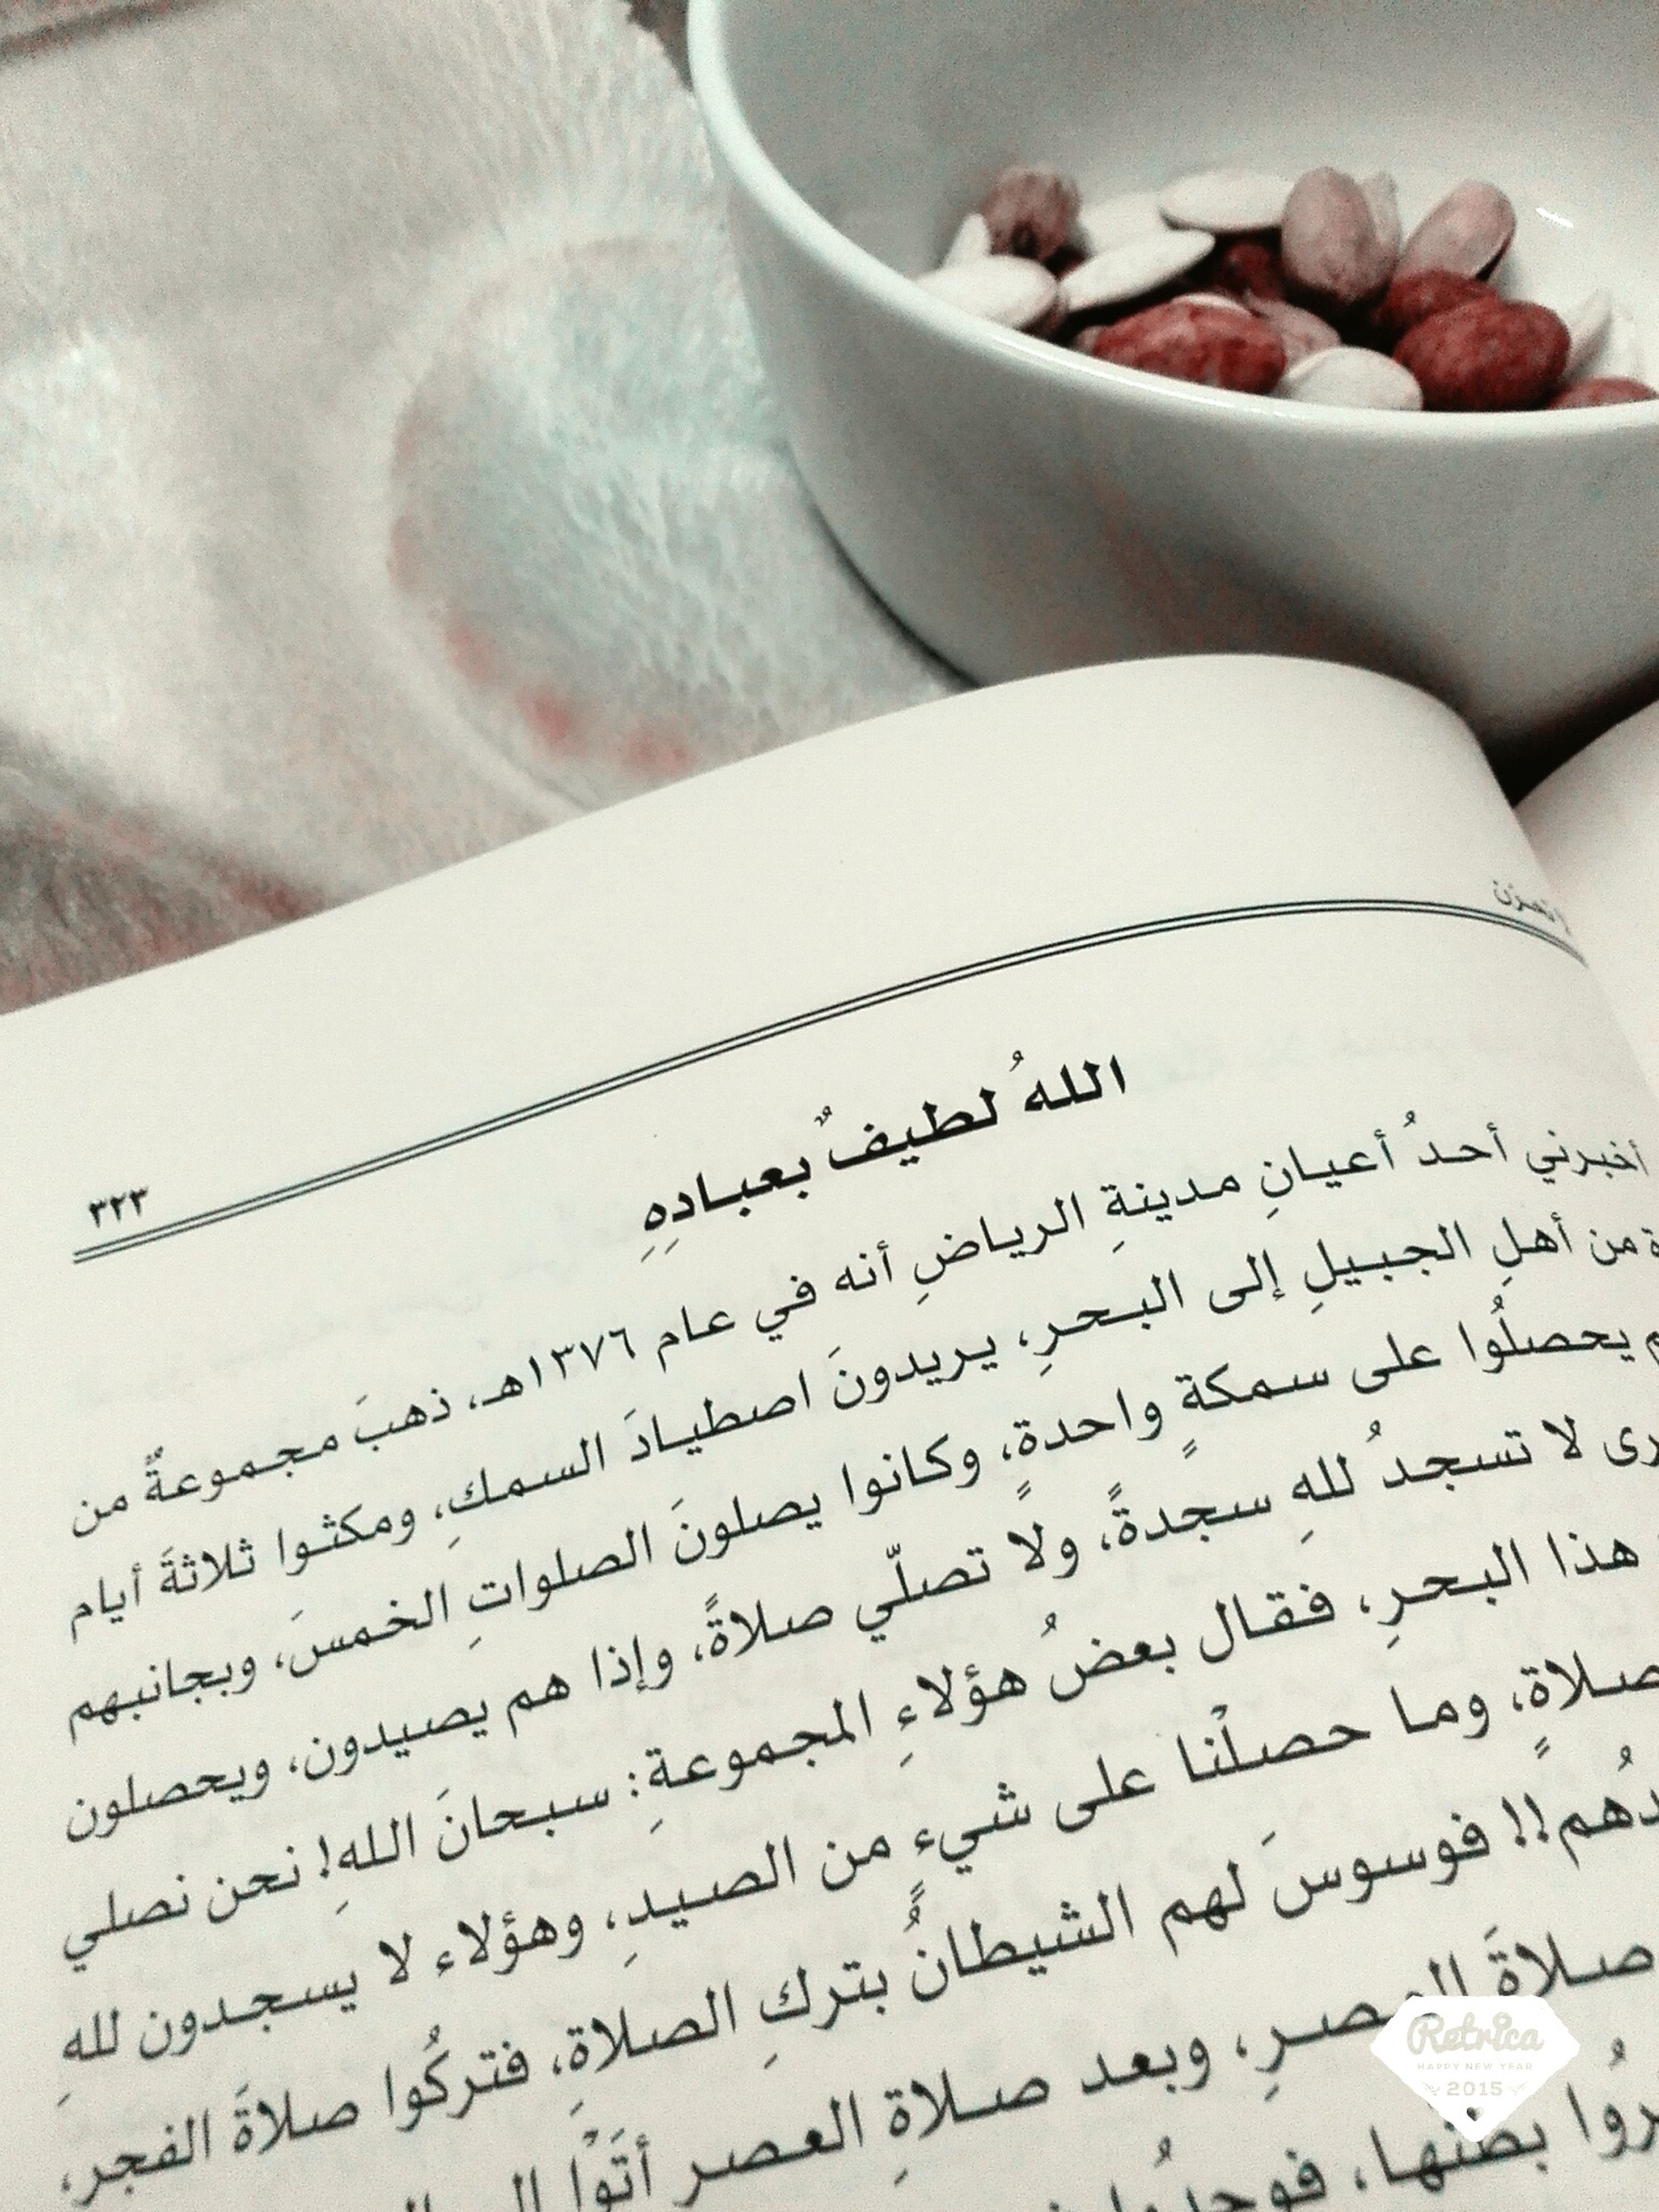 indoors, book, paper, close-up, text, education, bed, high angle view, white color, still life, no people, page, communication, table, western script, home interior, bedroom, textile, open, detail